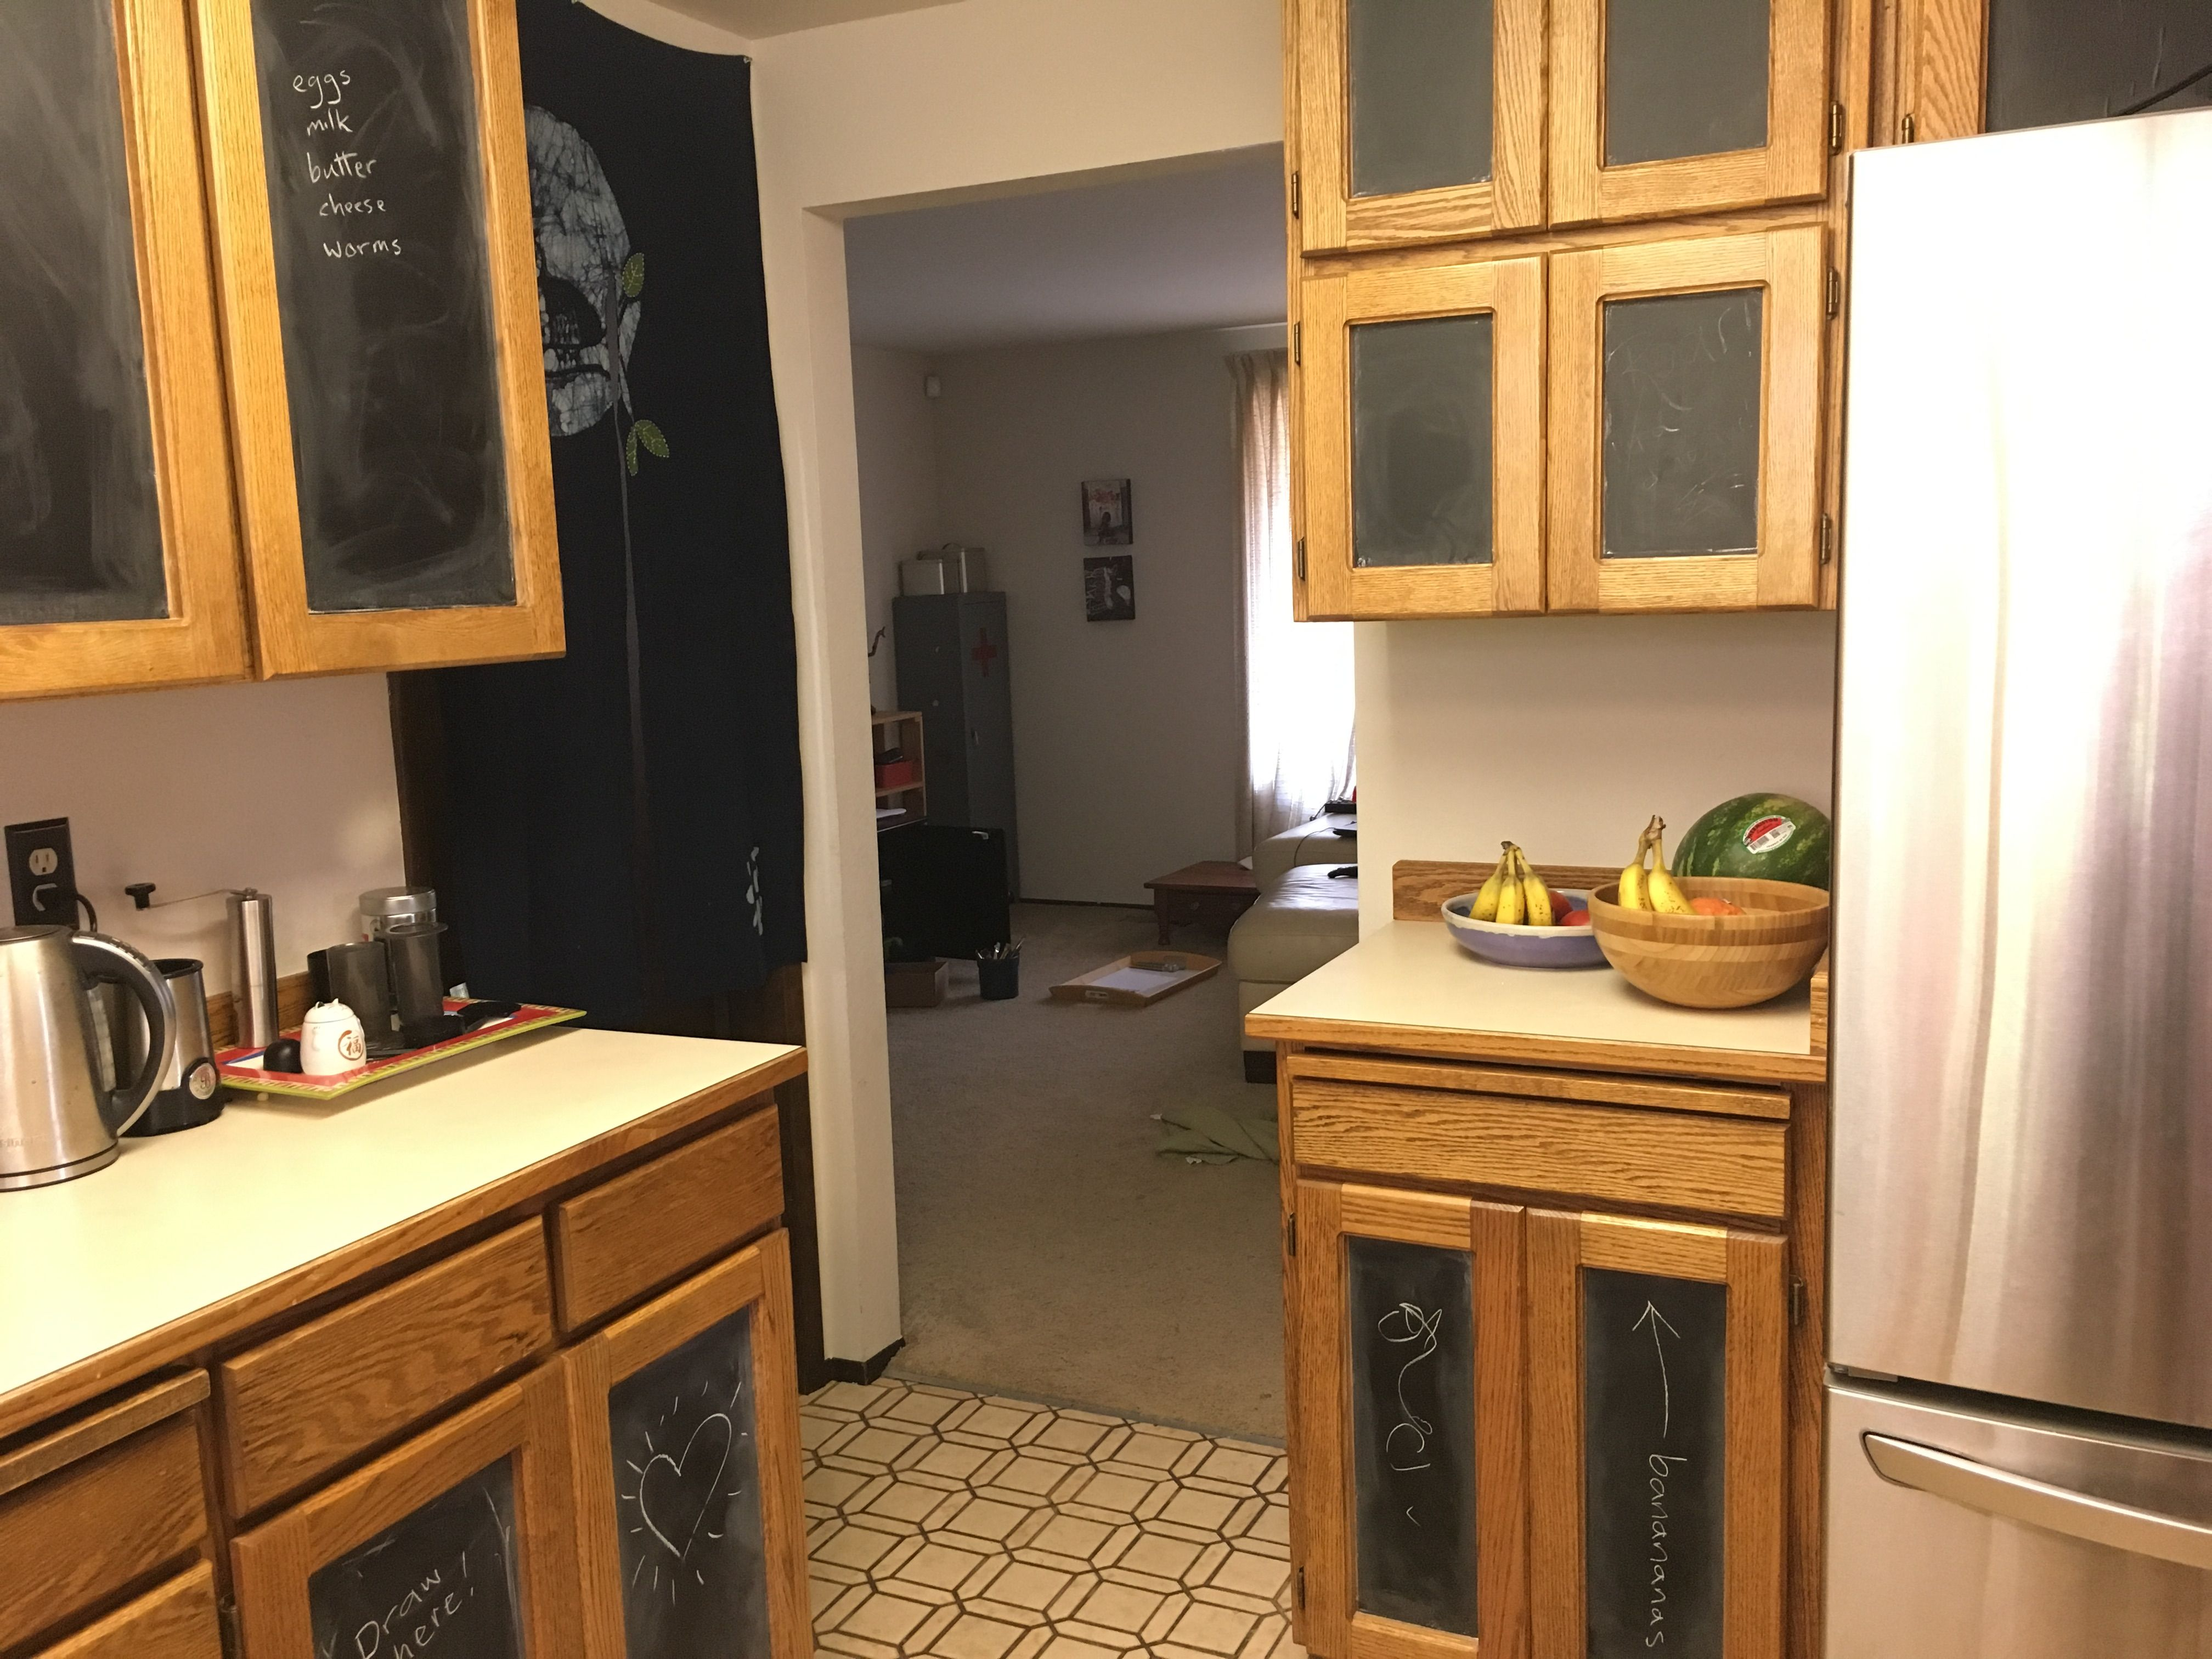 Diy Industrial Chalk Board Contact Paper Turned My 80 S Kitchen Into A 19th Century Science Lab Kitchen Kitchen Cabinets Home Decor